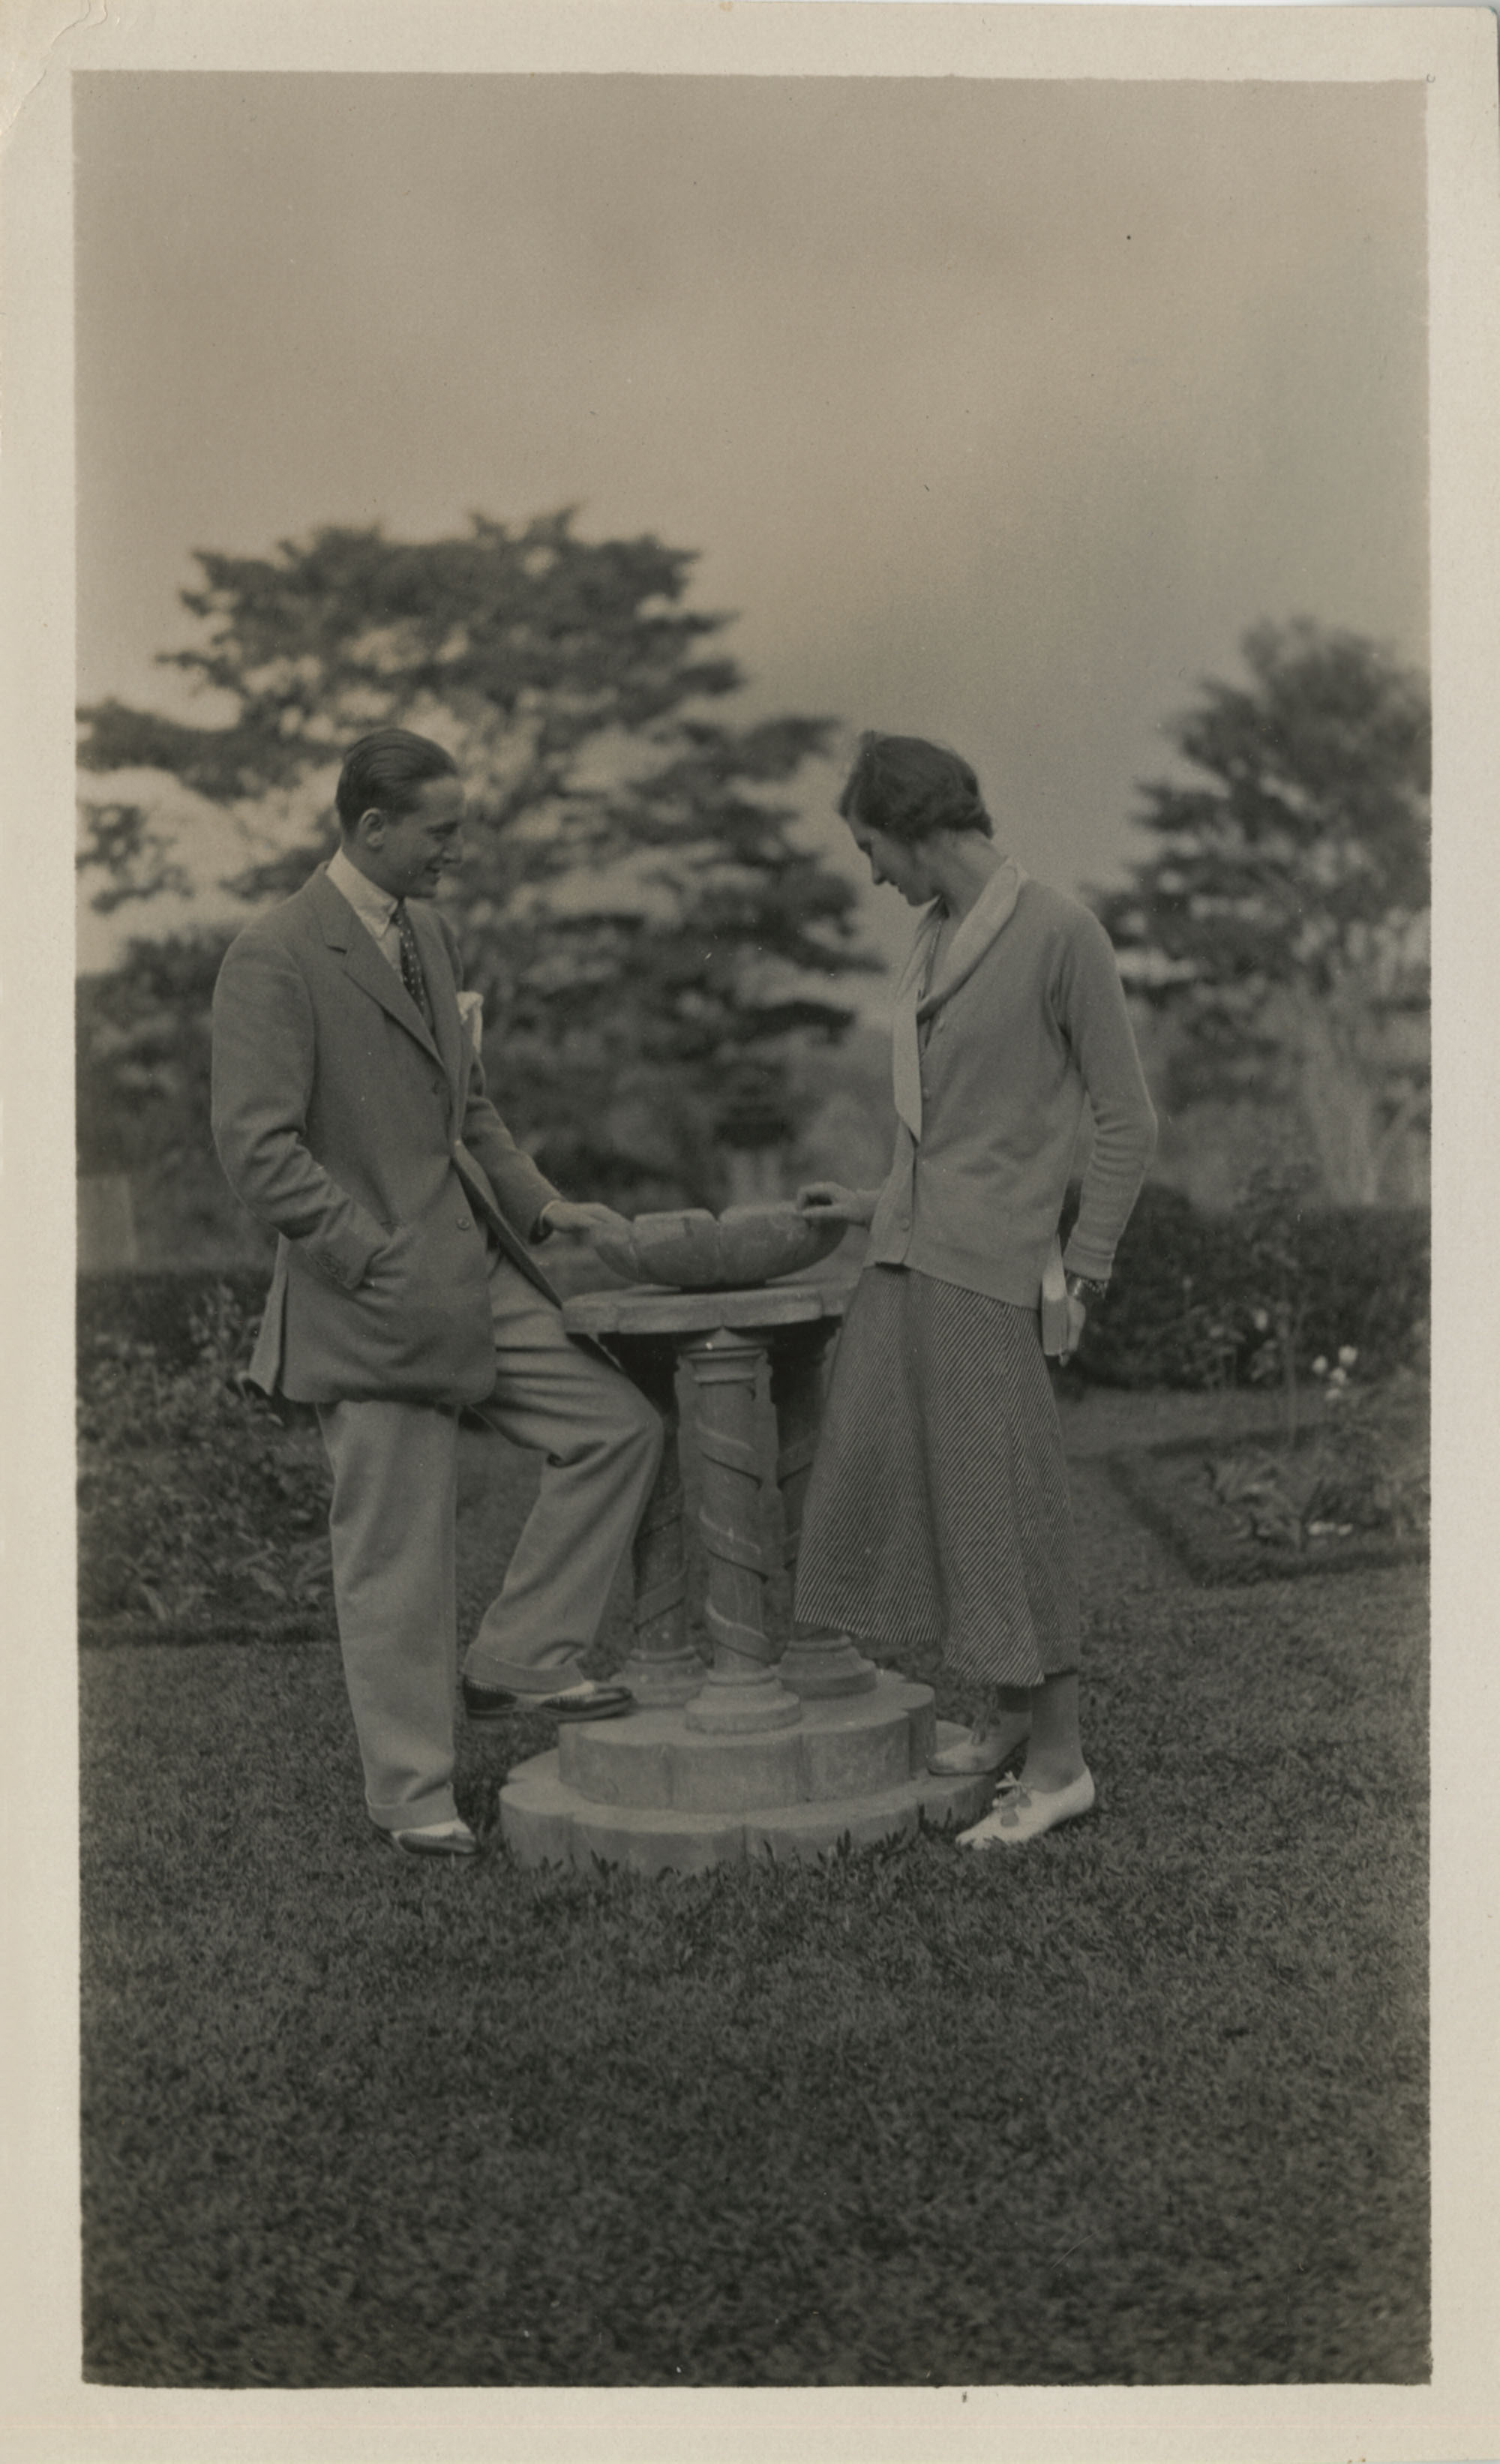 Unidentified couple in a garden